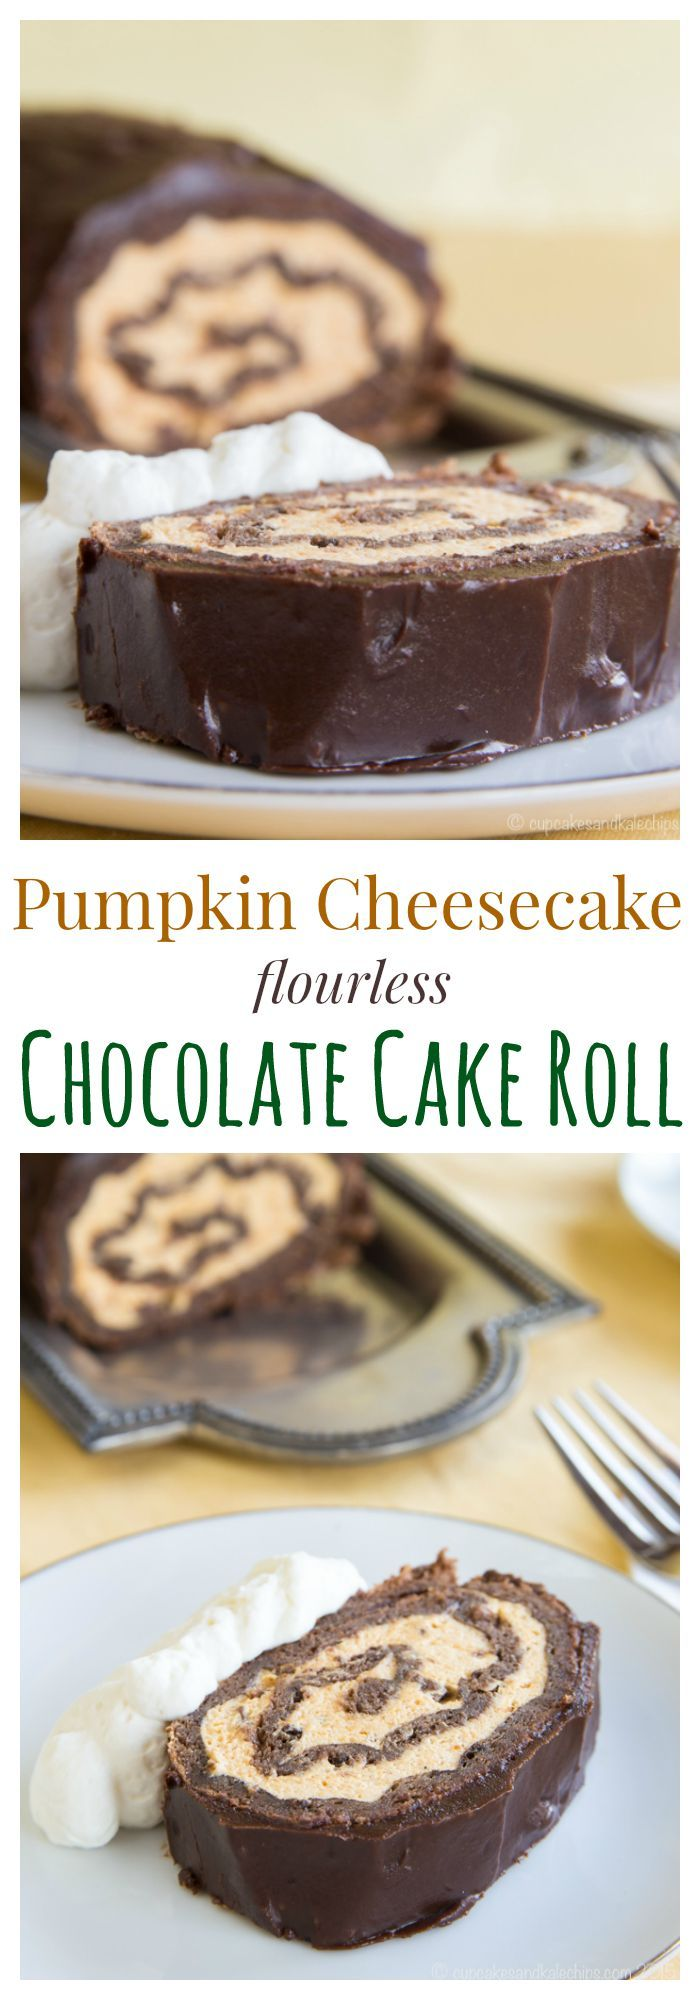 Pumpkin Cheesecake Flourless Chocolate Cake Roll - an impressive dessert for fall with pumpkin cheesecake mousse, chocolate sponge cake, and rich chocolate ganache. #PumpkinWeek | cupcakesandkalechips.com | gluten free recipe